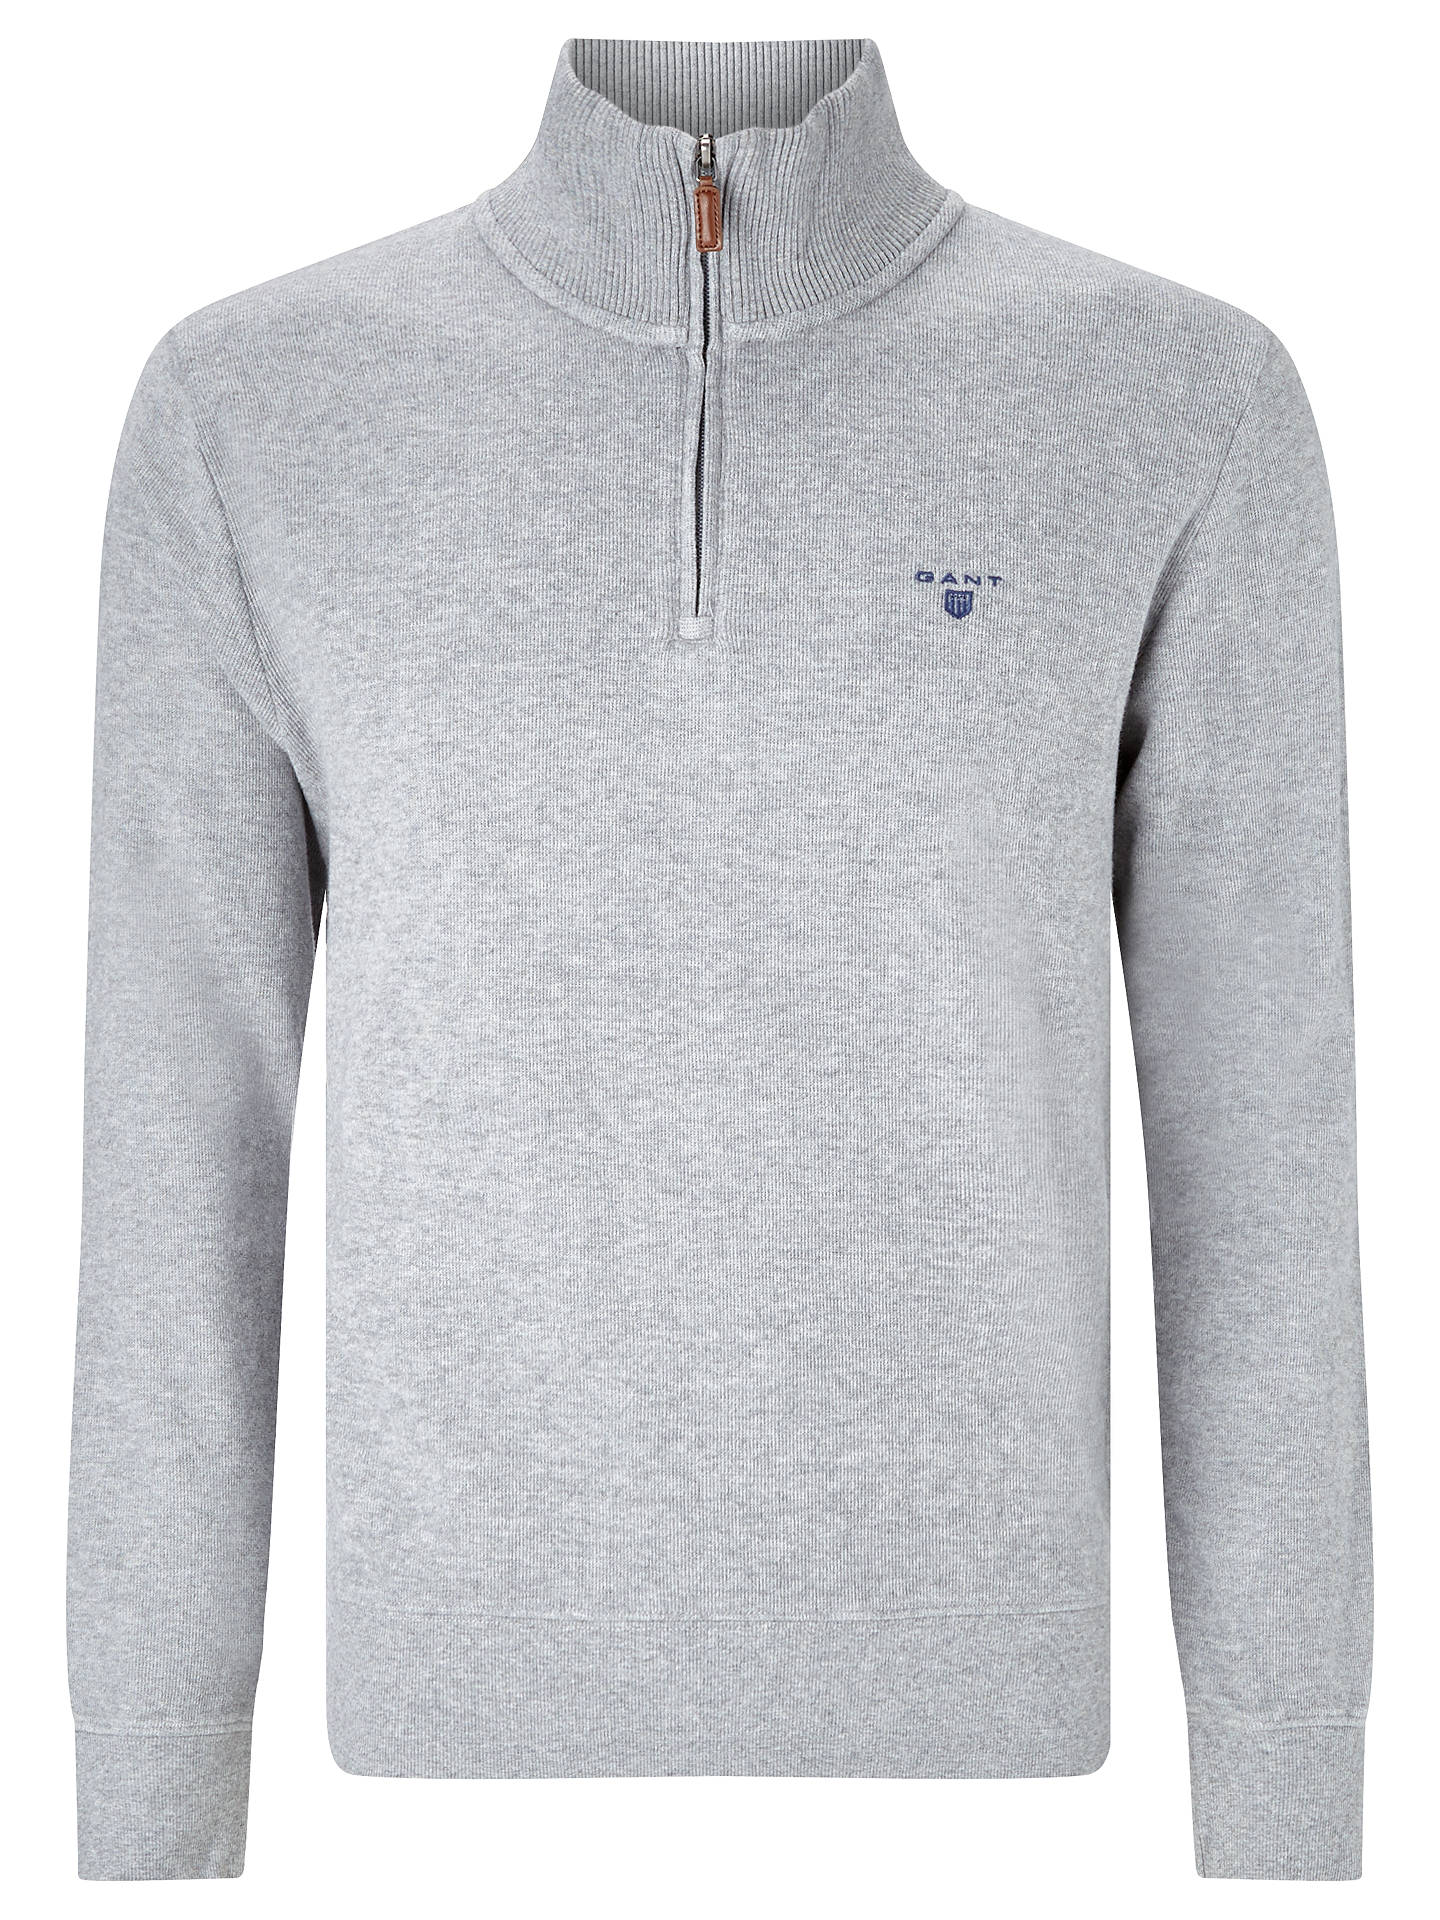 pretty nice 2d55b d27bd Gant Sacker Half-Zip Jersey Top at John Lewis & Partners